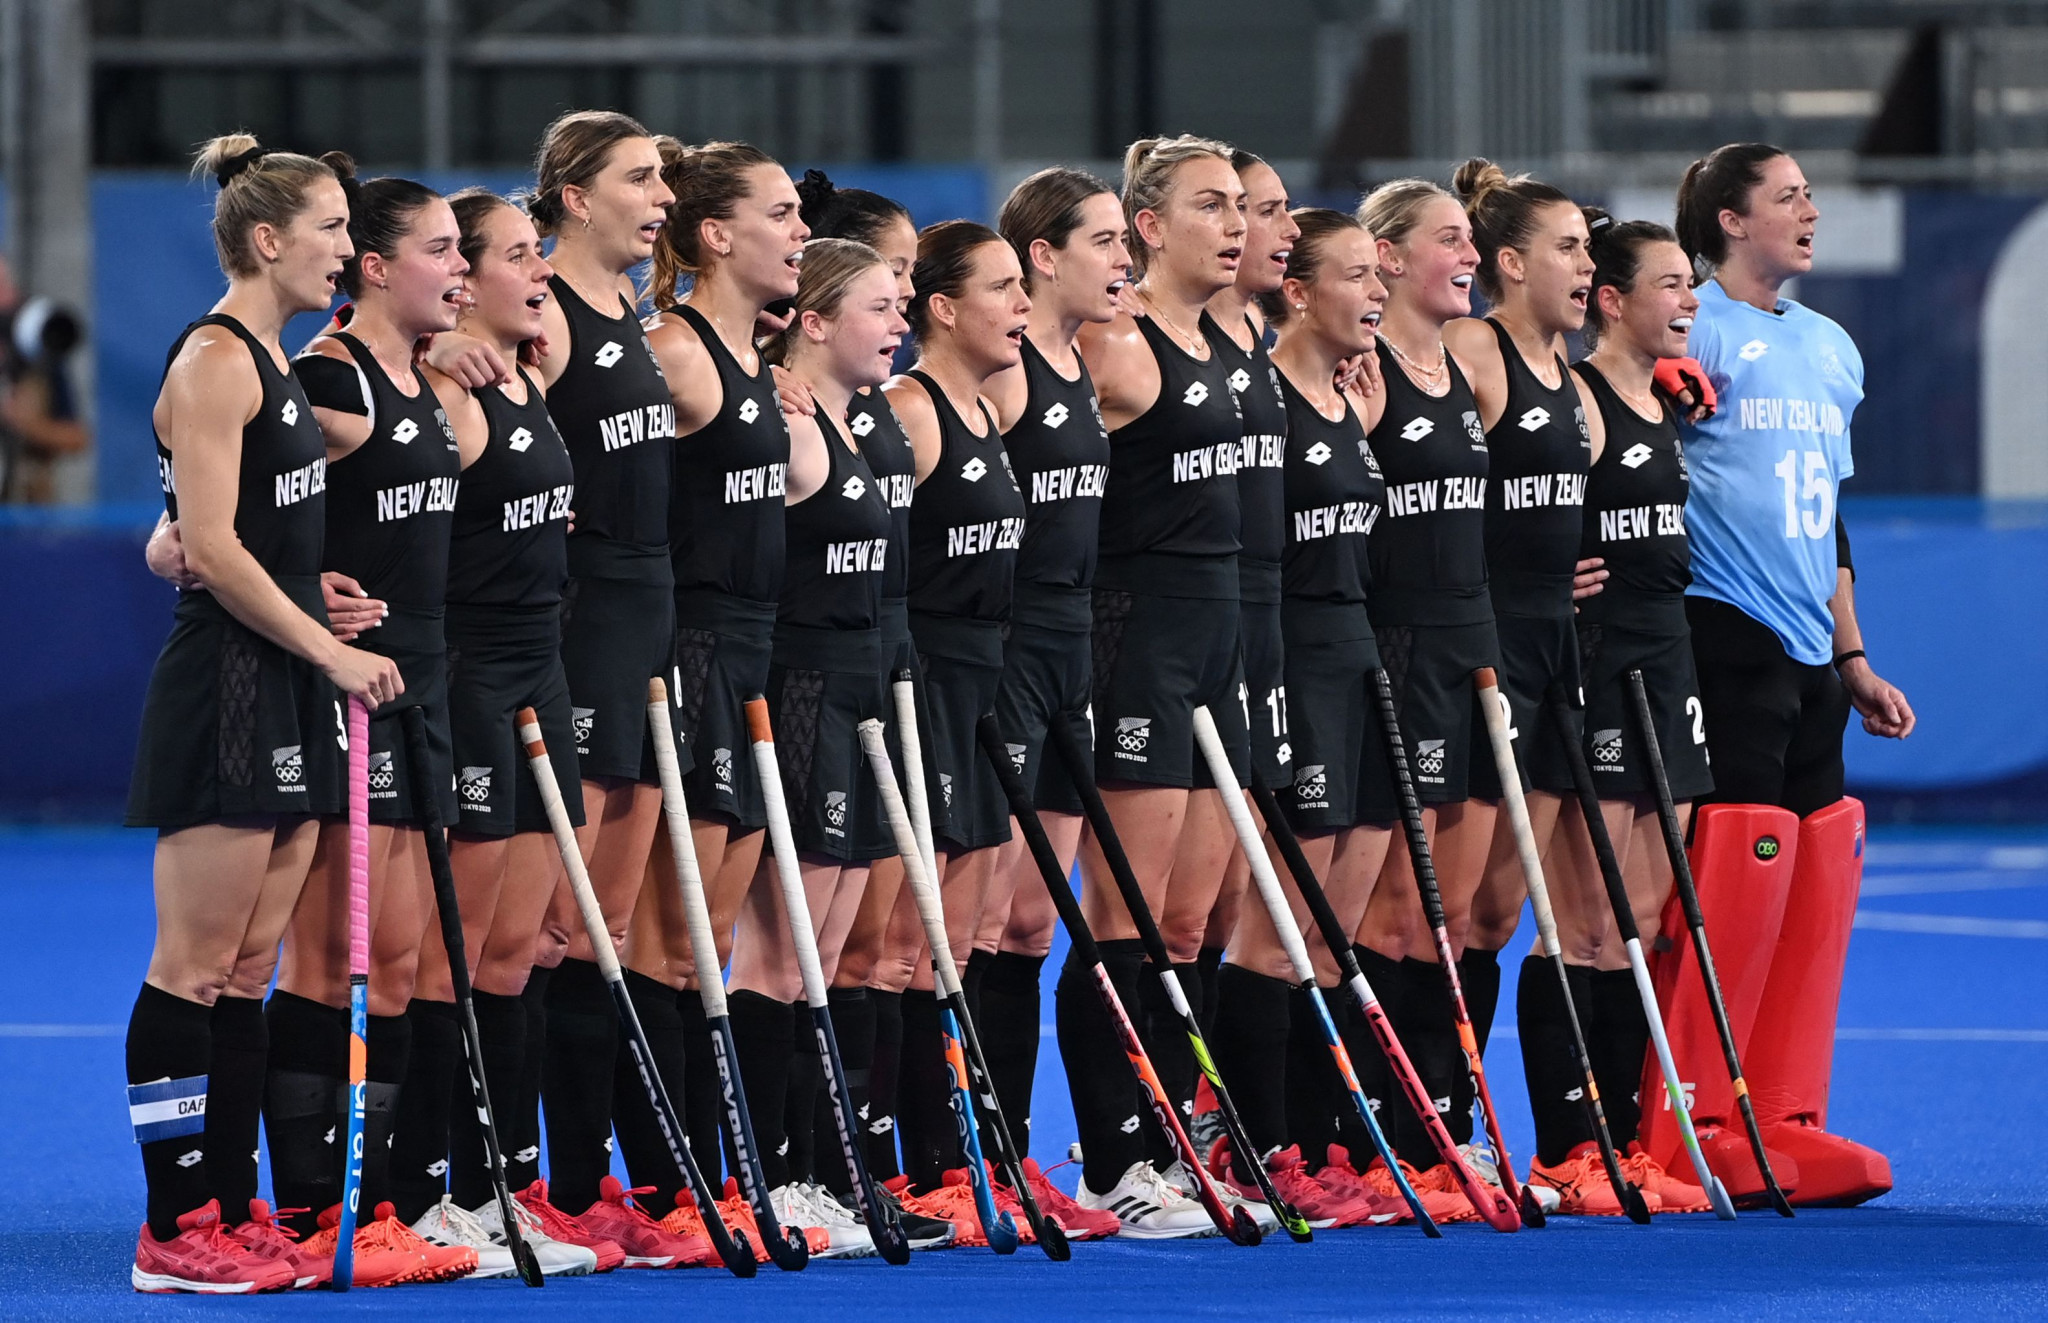 New Zealand's National Hockey Championship cancelled due to COVID-19